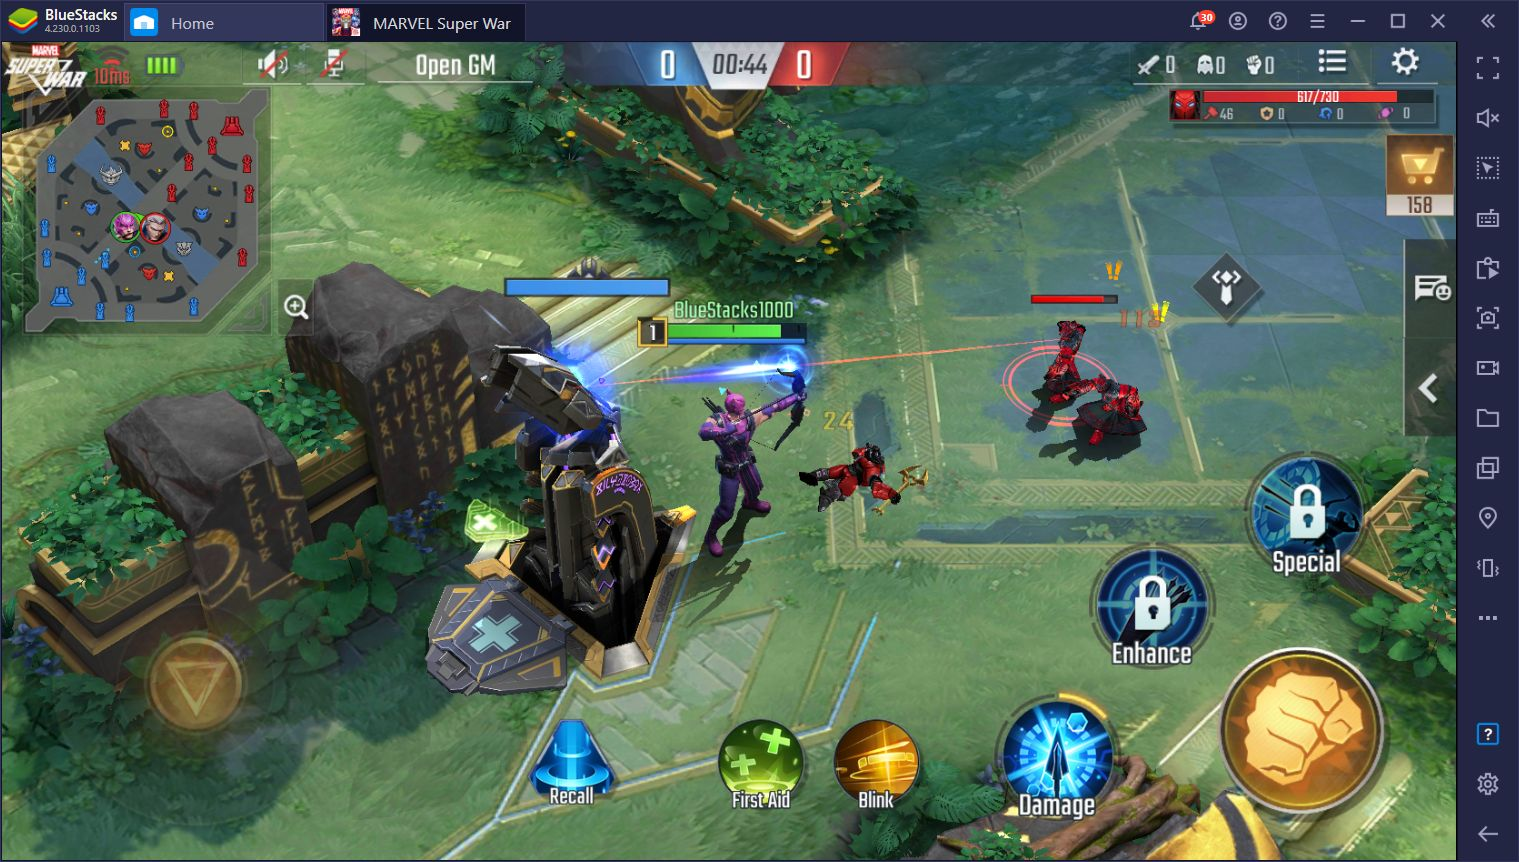 Marvel Super War – Tips and Tricks for Laning and Fighting